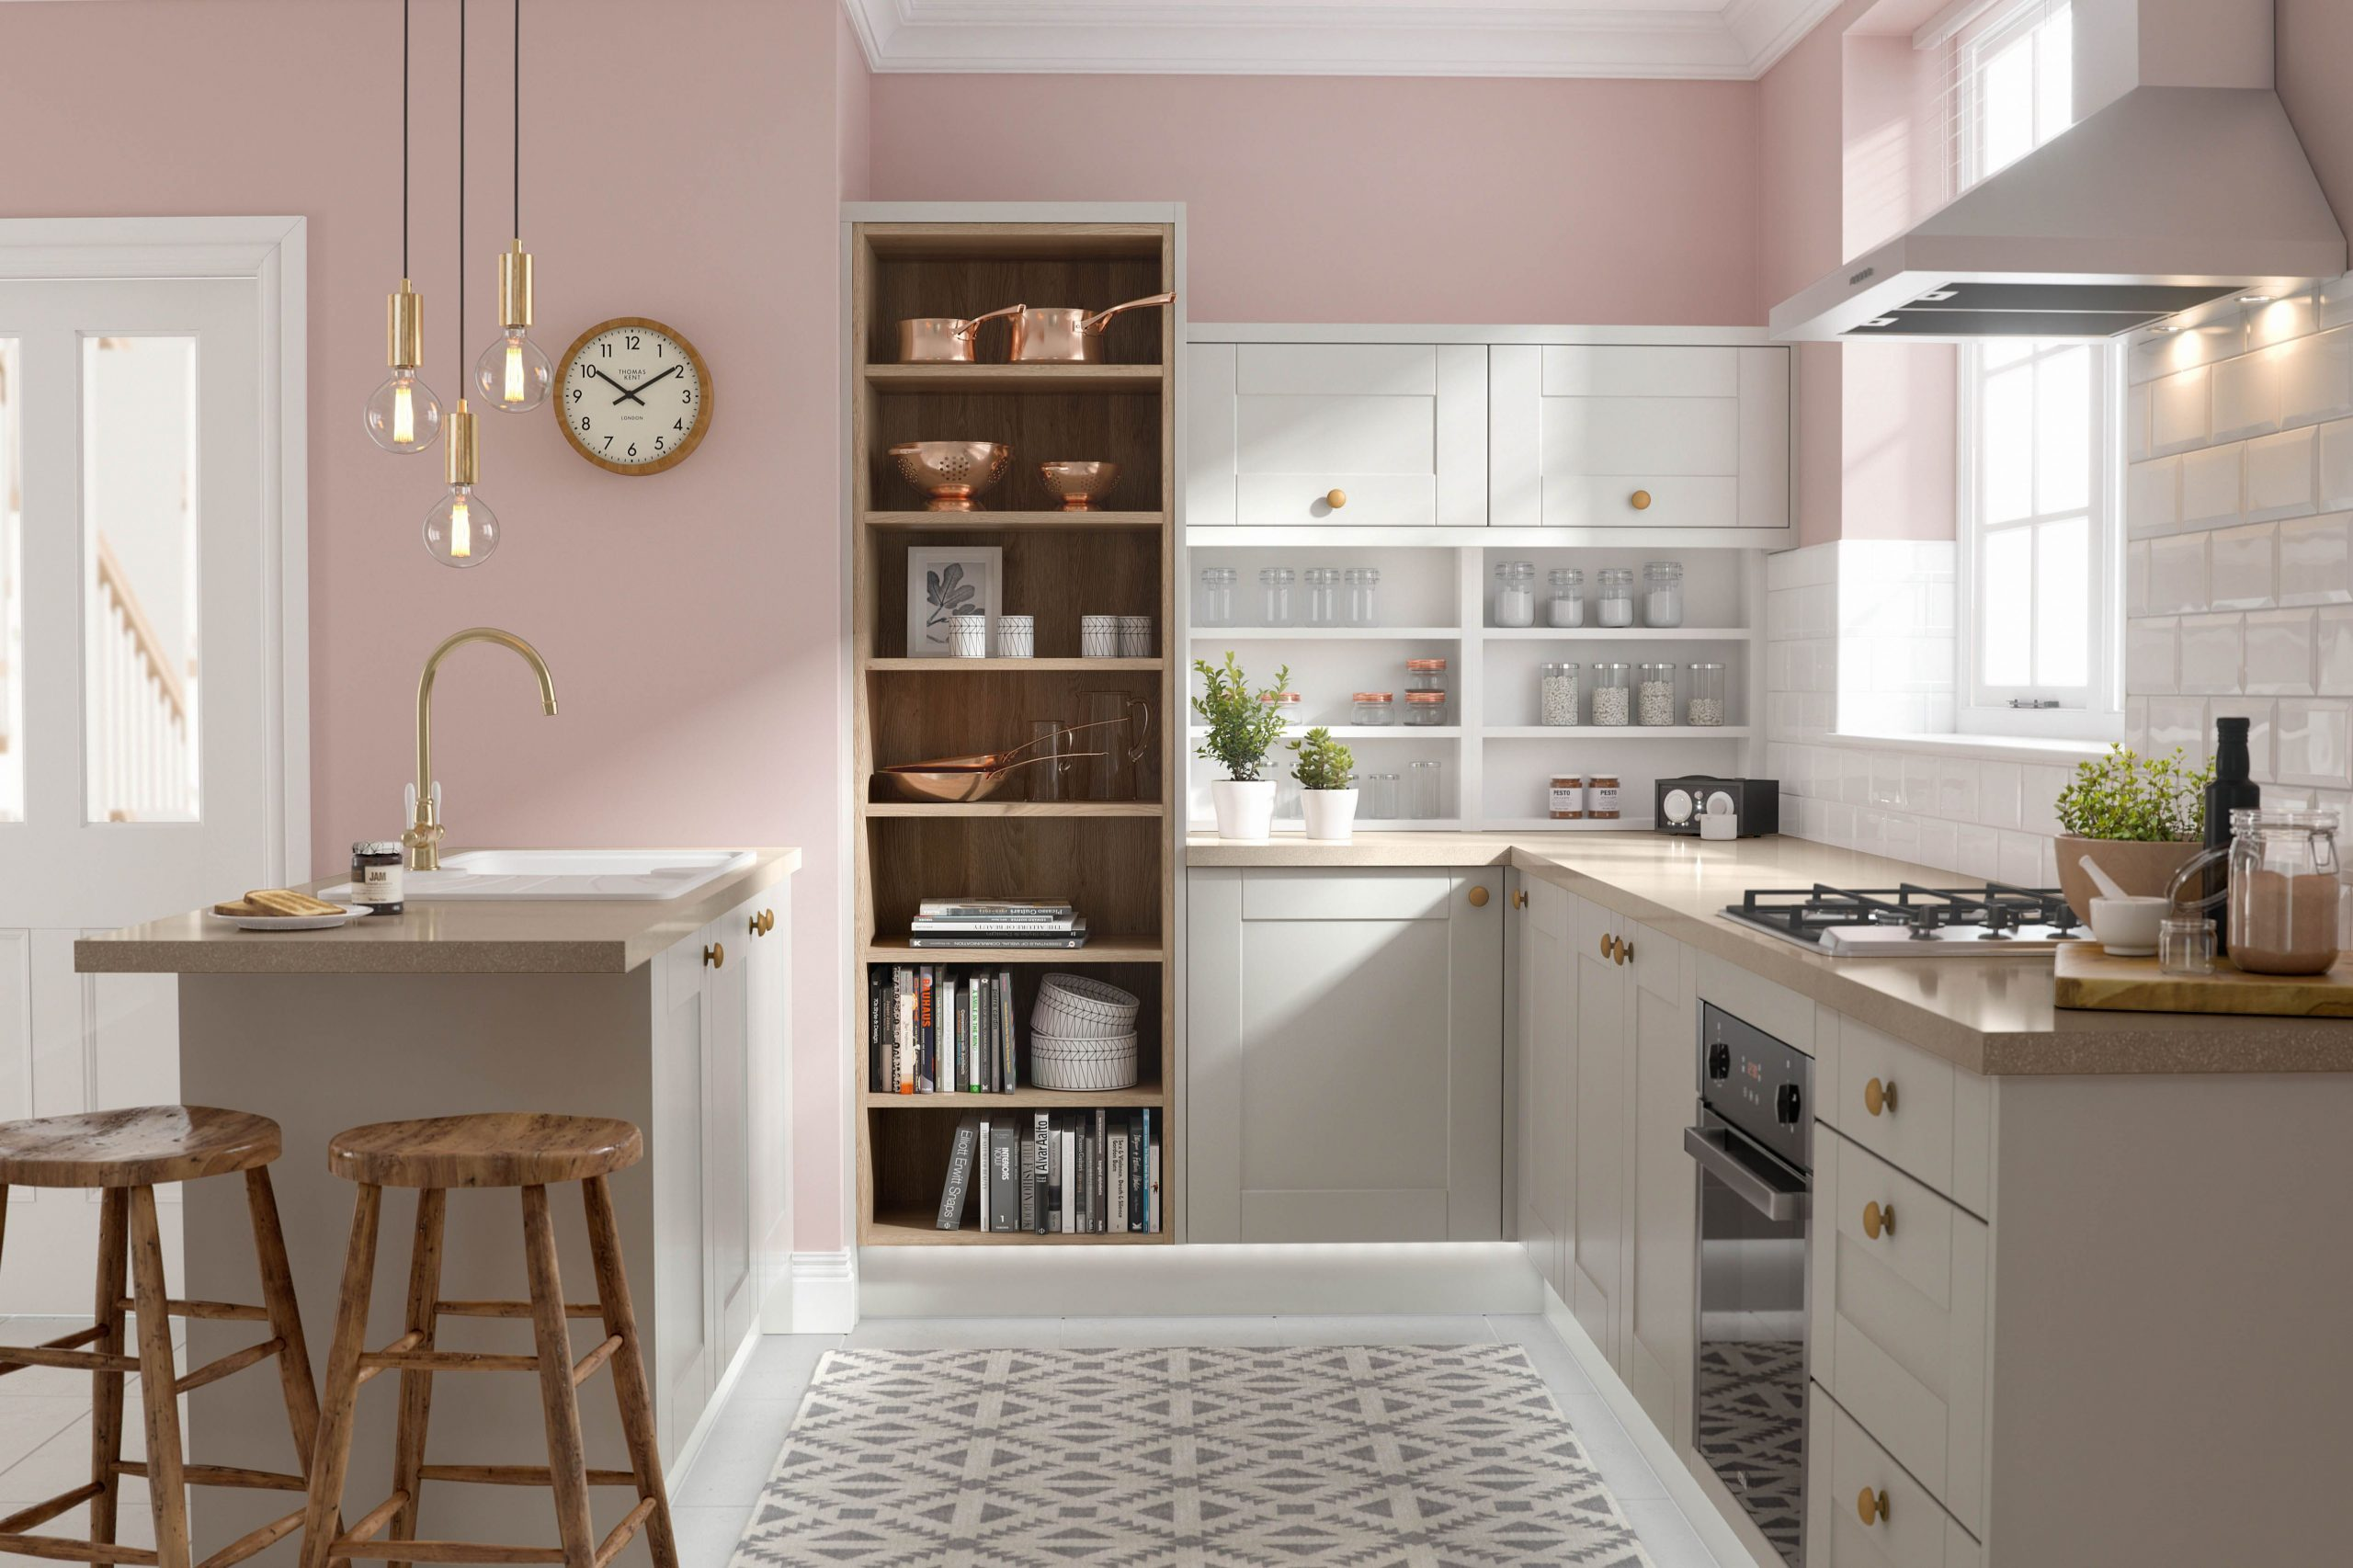 Decoration ideas for a kitchen with   breakfast bar